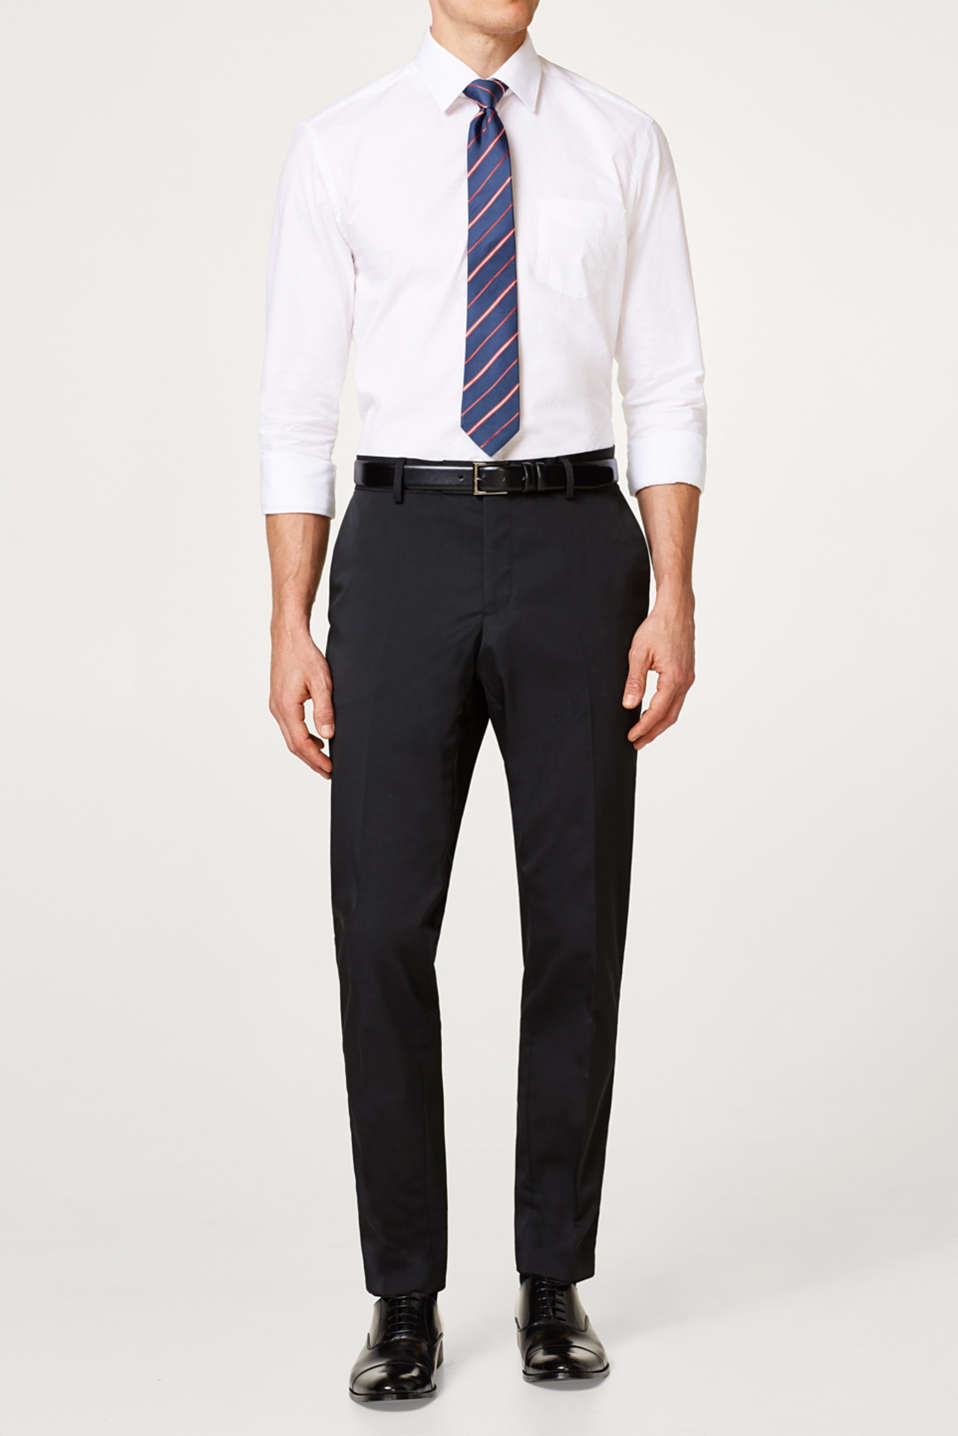 Esprit - Pantalon de costume en twill stretch